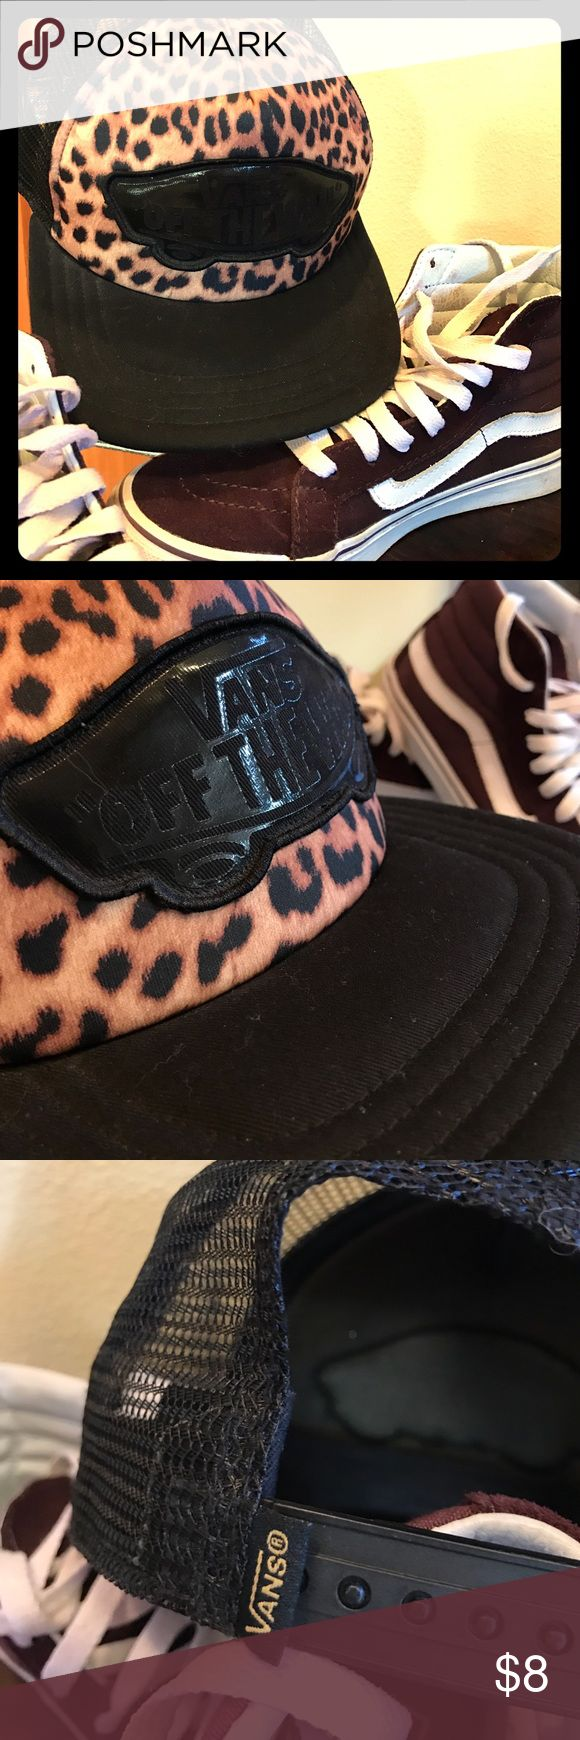 VANS Cheetah Print Trucker Hat Polyester mesh back adjustable hat. Black and cheetah print with black Vans of the Wall logo patch. Vans Accessories Hats